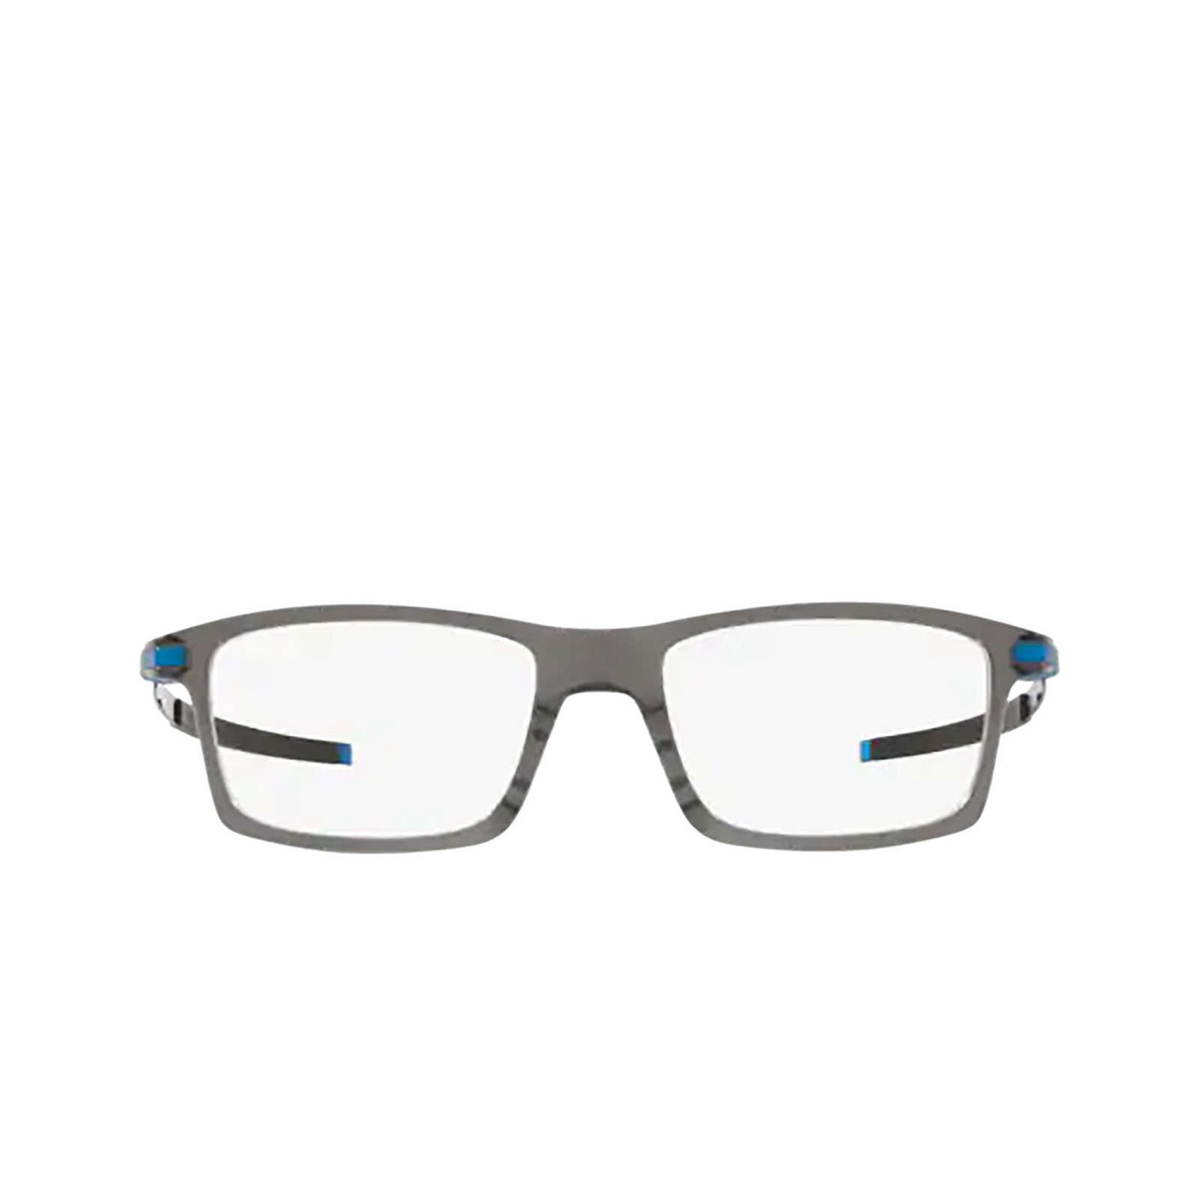 Oakley® Rectangle Eyeglasses: Pitchman OX8050 color Polished Grey Smoke 805012 - front view.